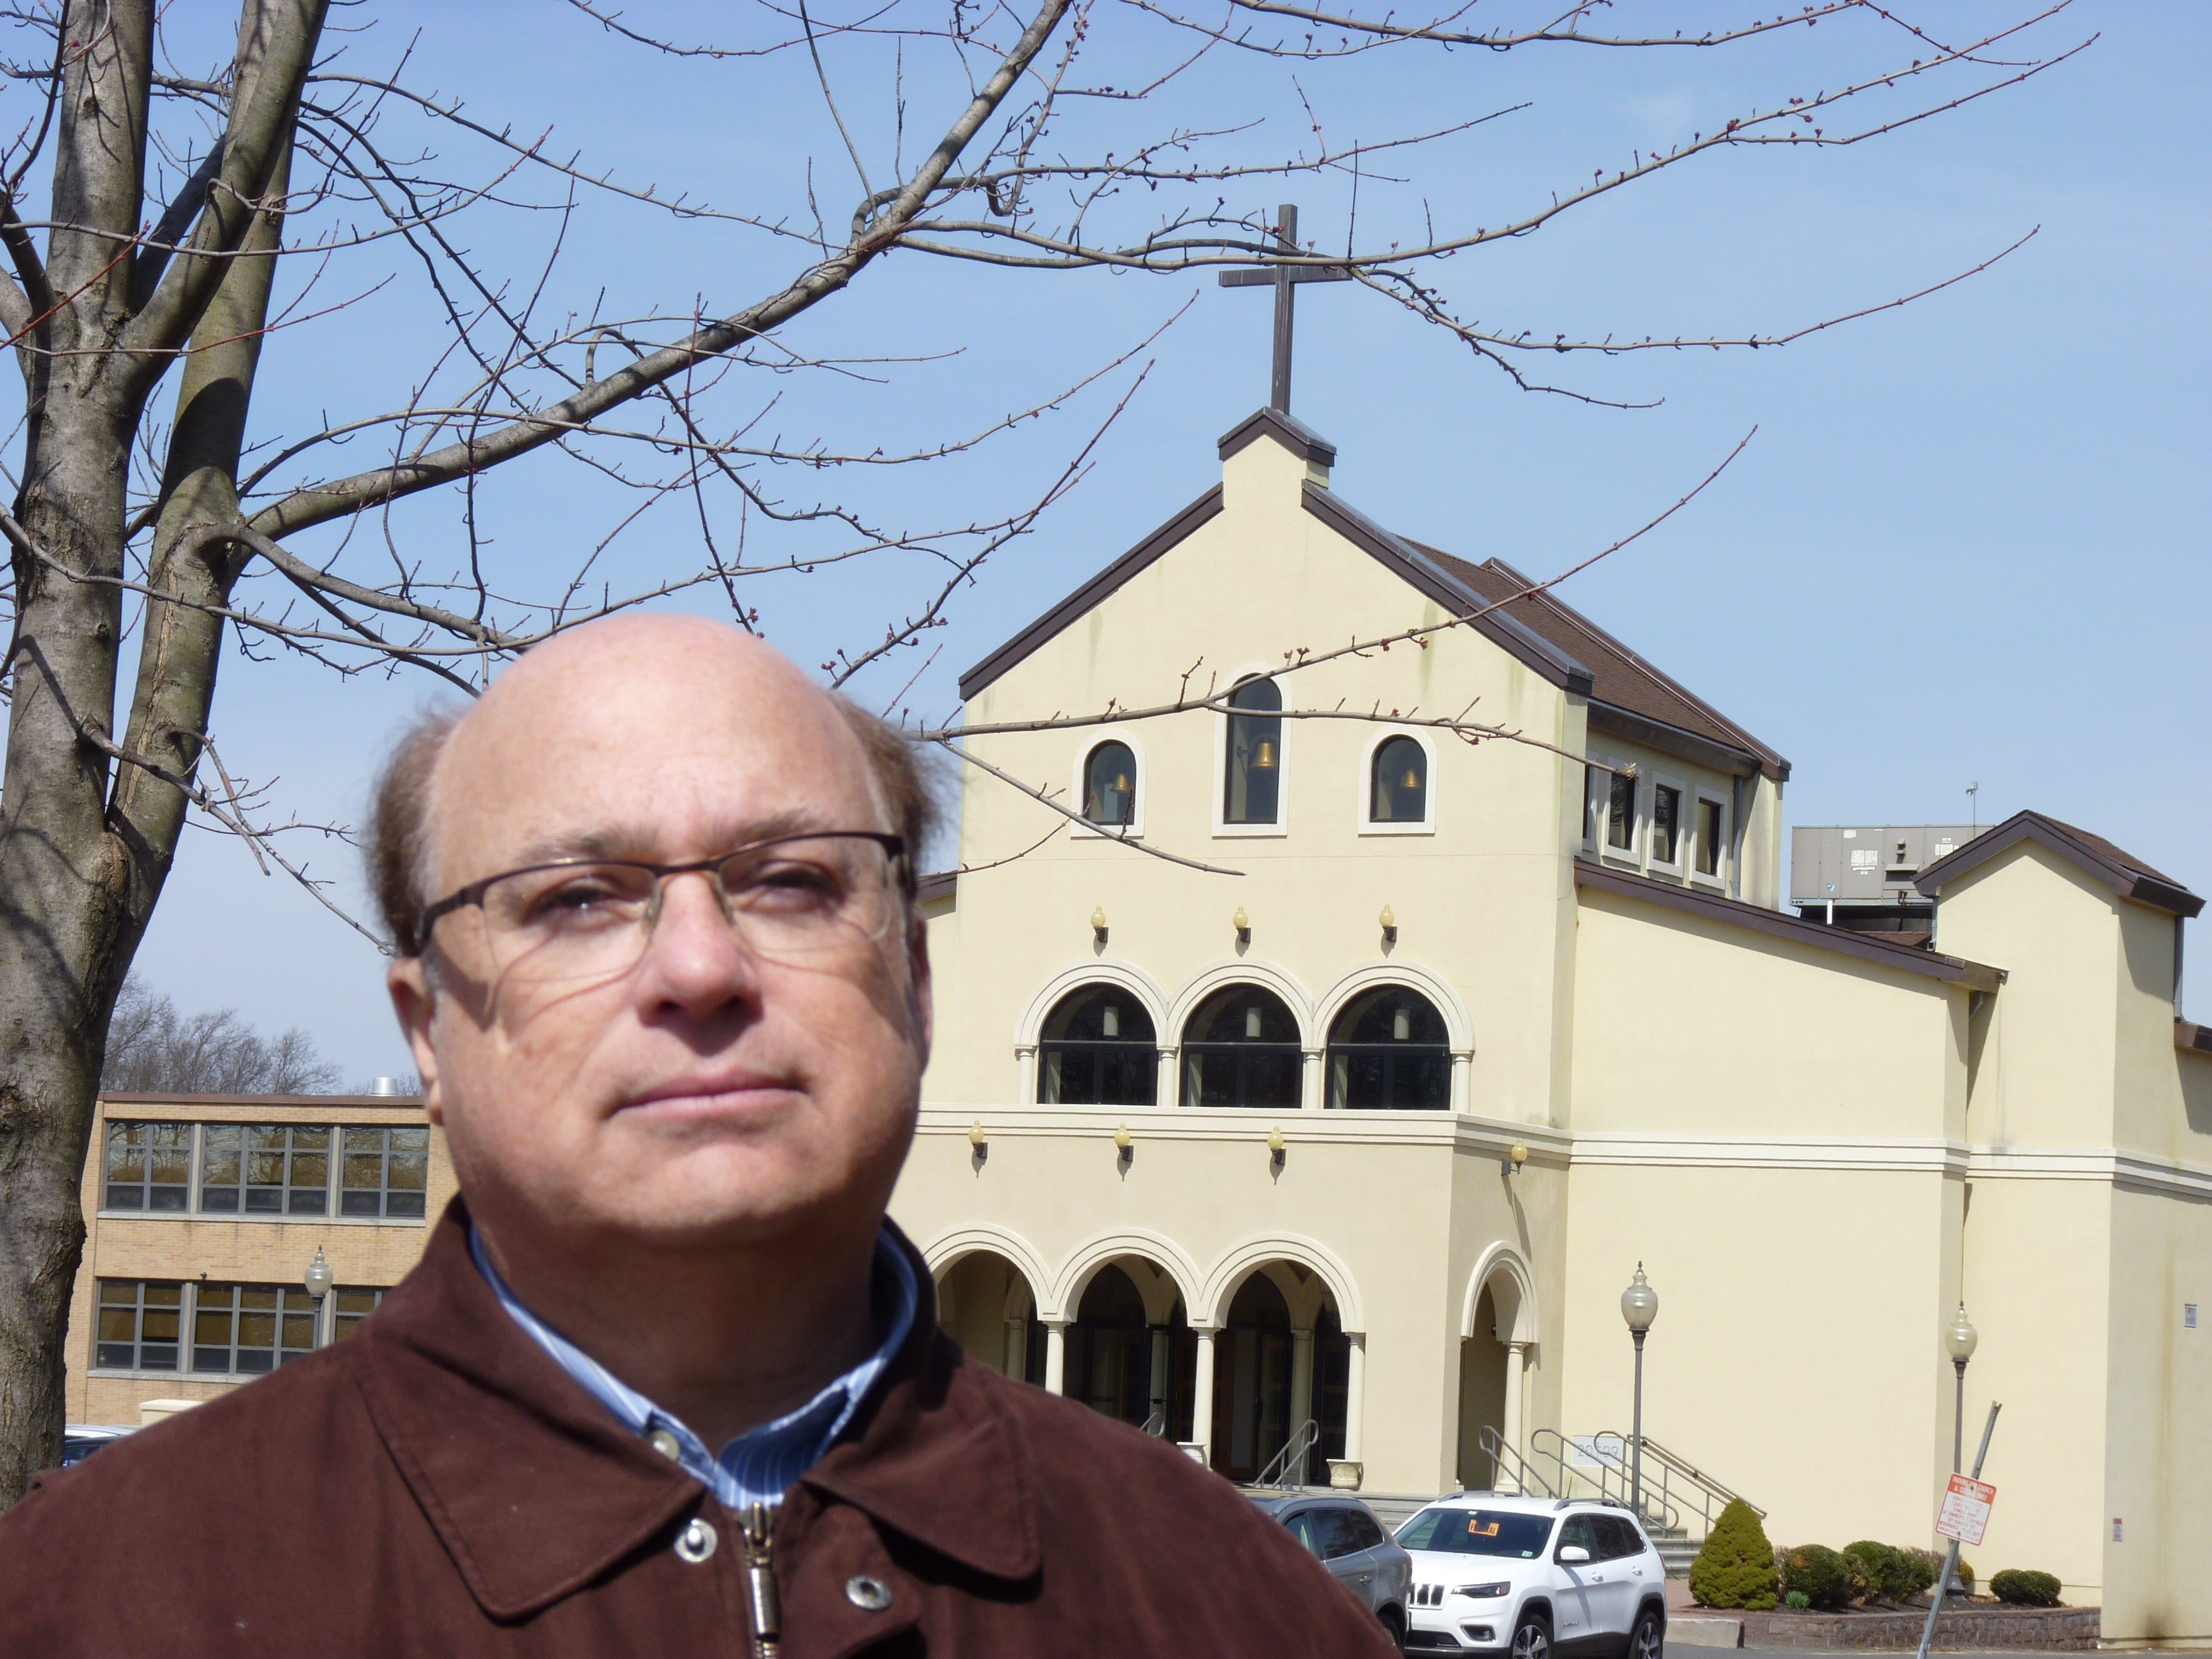 Mark Crawford, New Jersey director of the Survivors Network of those Abused by Priests.